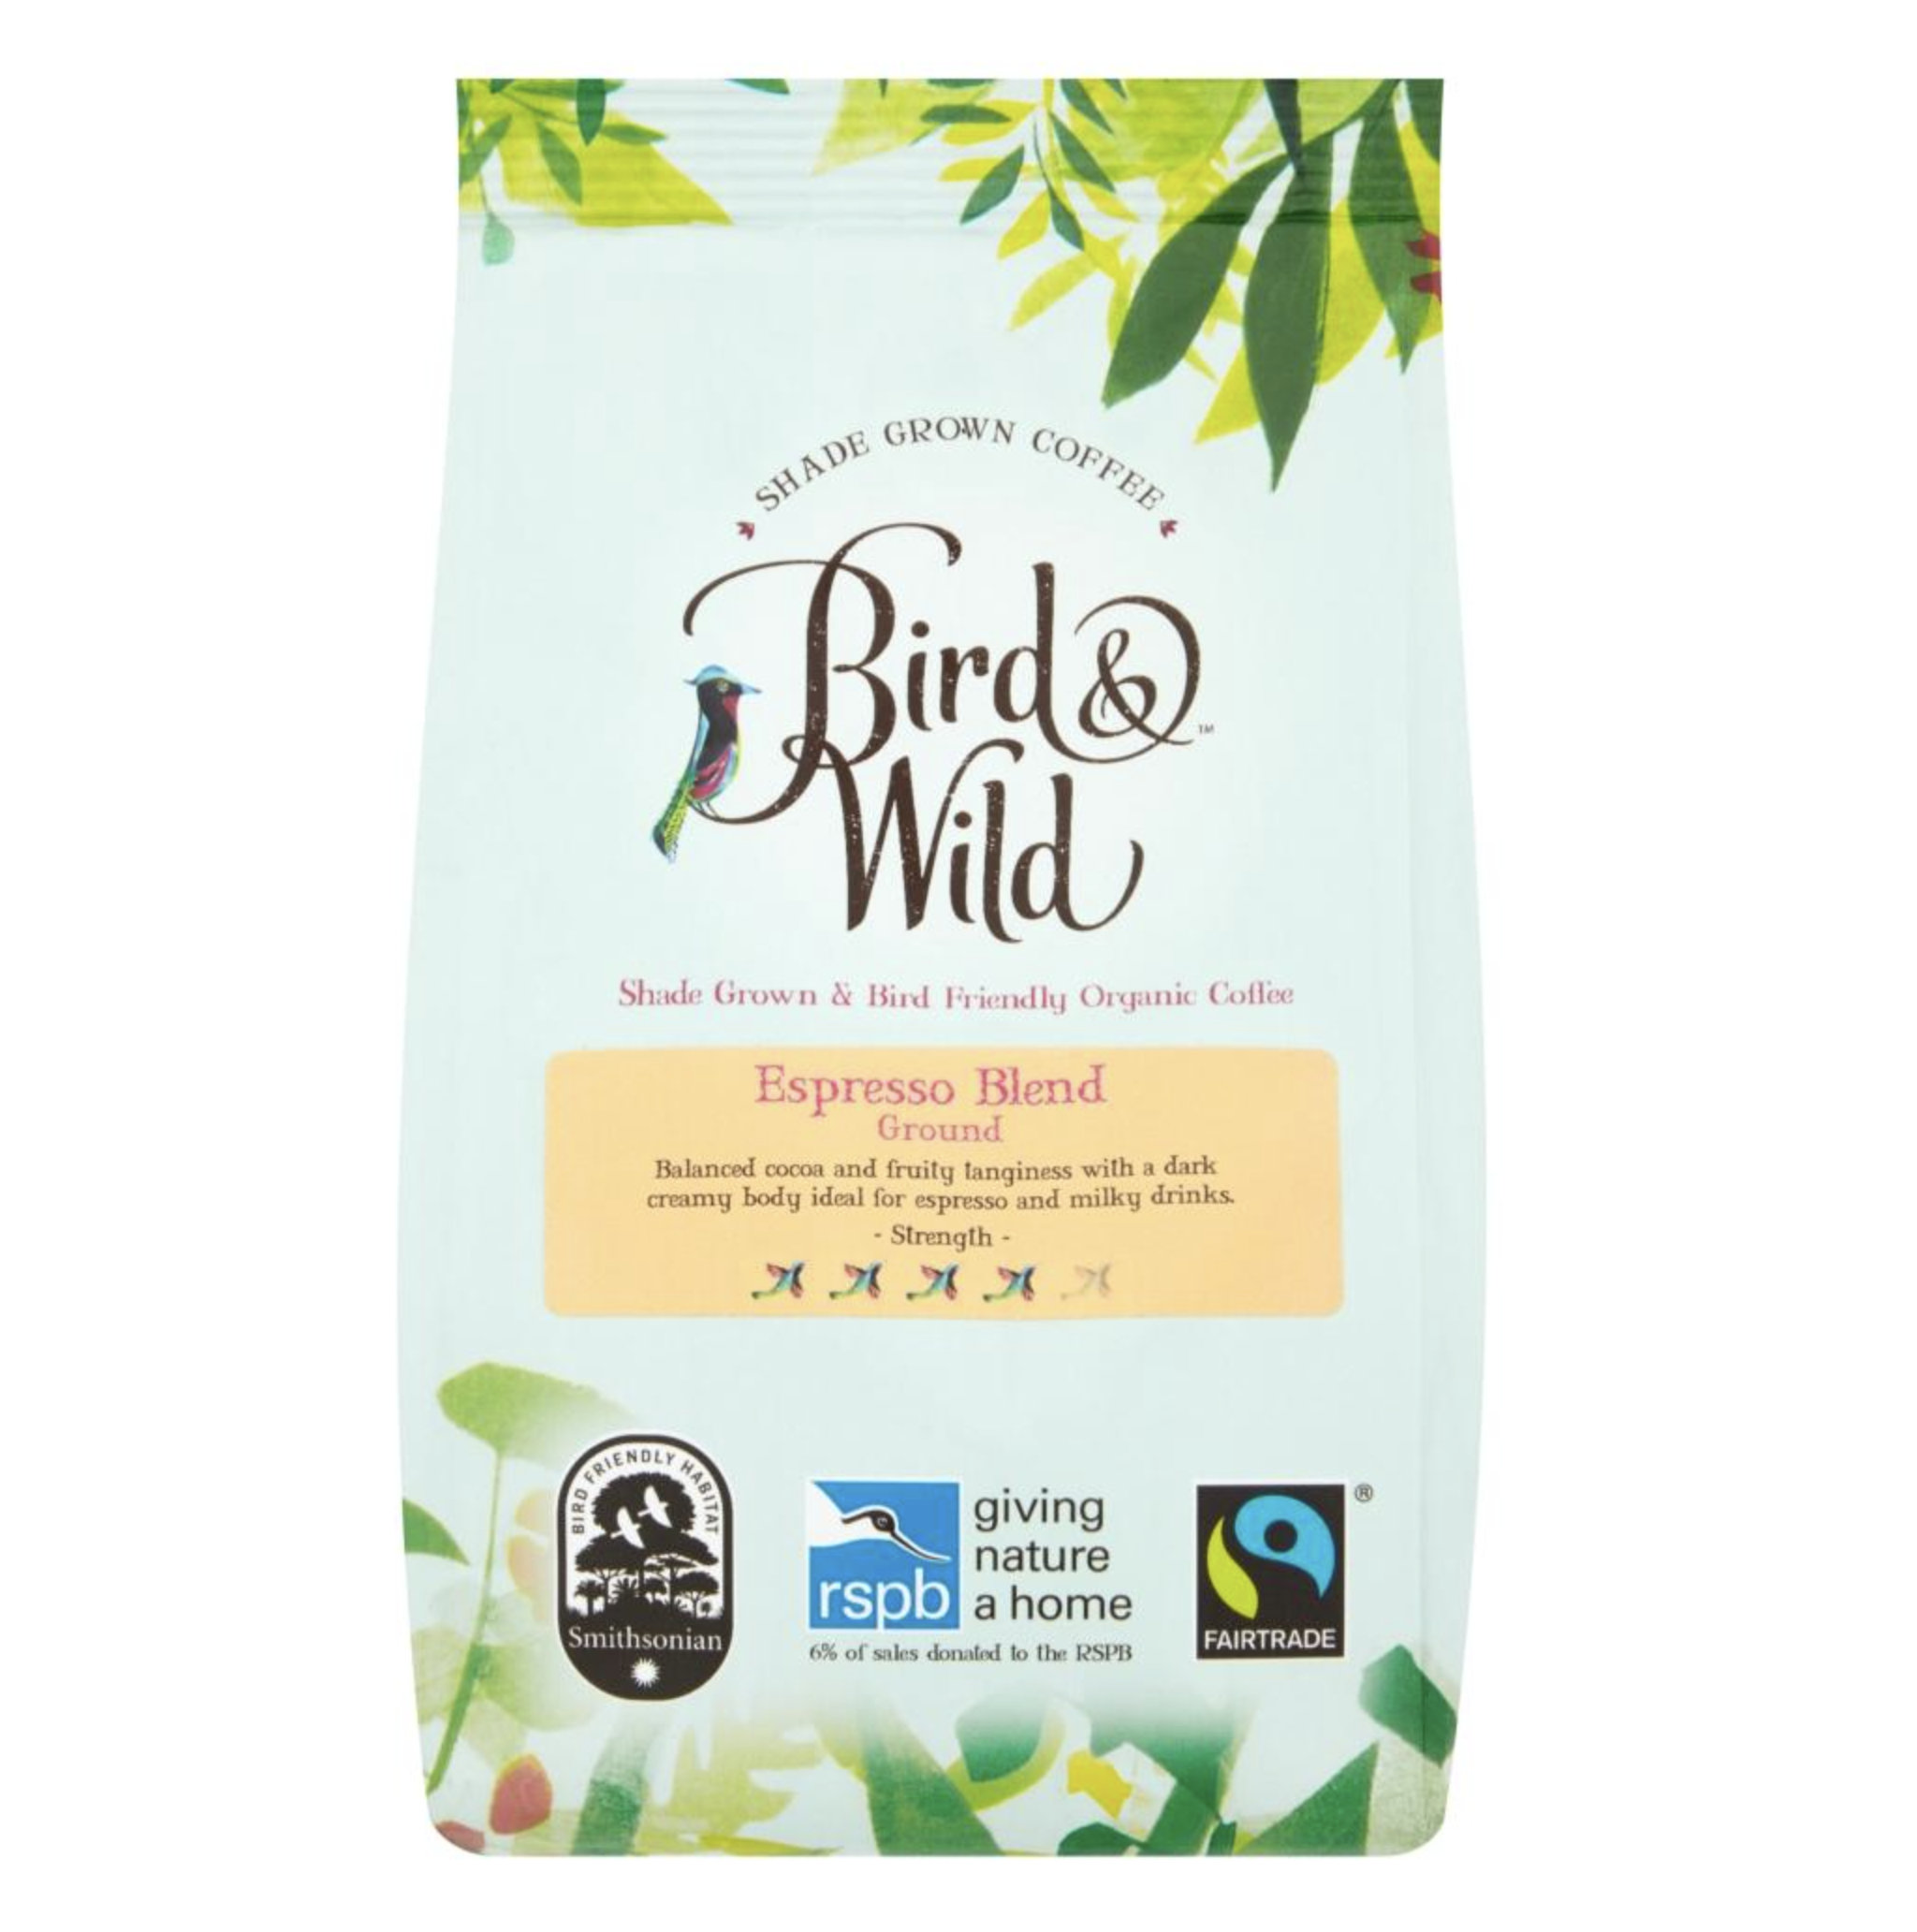 For the coffee loving twitcher..Bird & Wild coffee donates 6% of proceeds to the RSPB